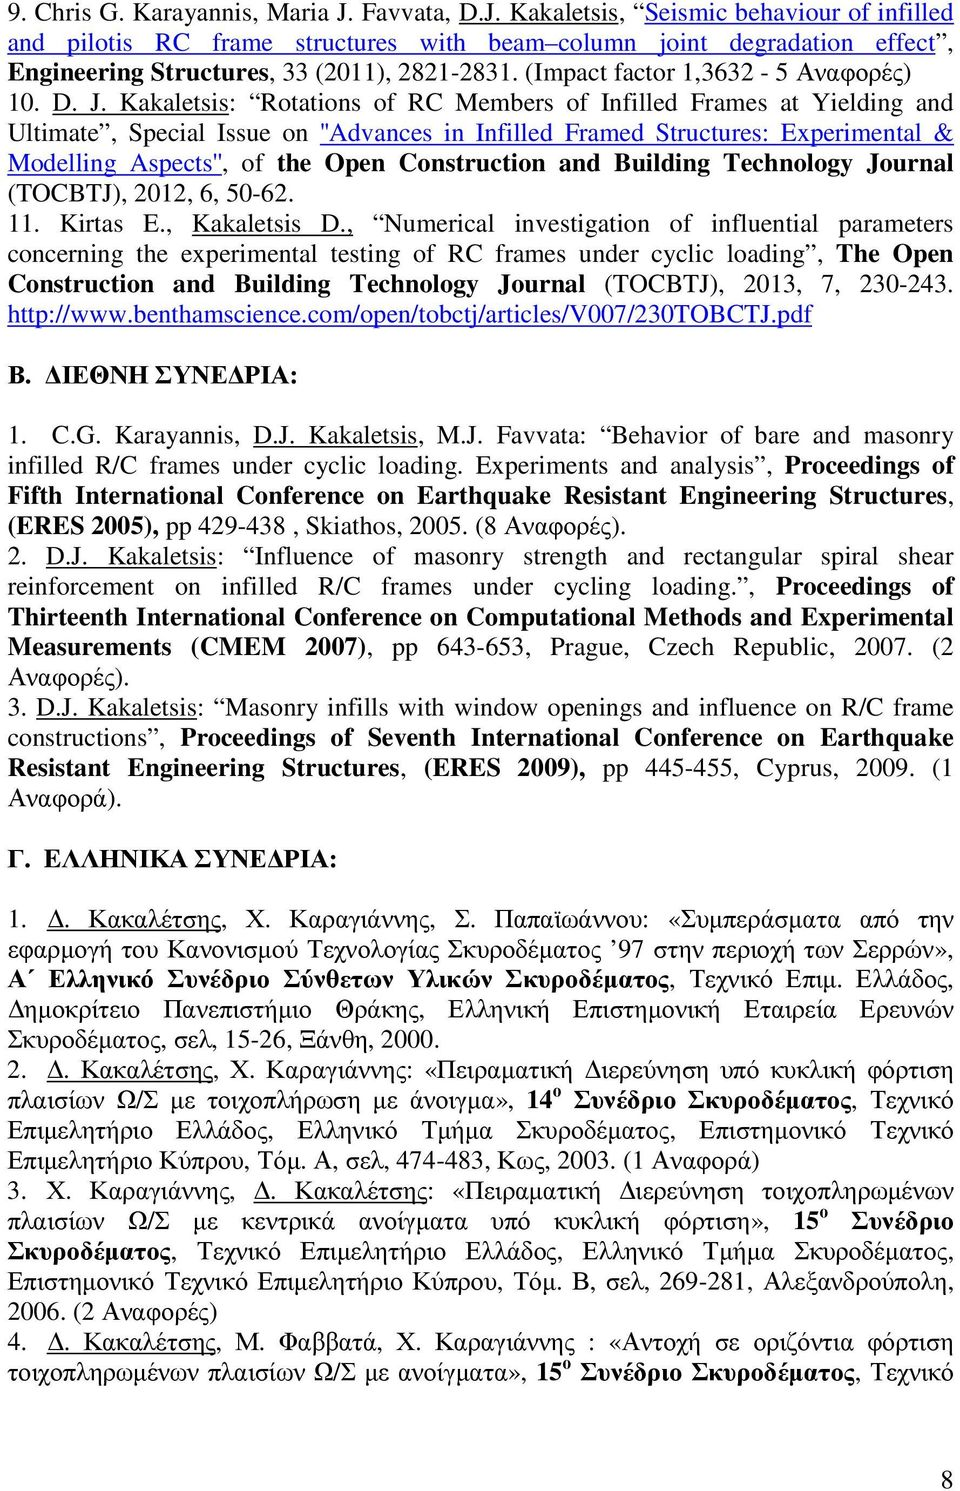 Kakaletsis: Rotations of RC Members of Infilled Frames at Yielding and Ultimate, Special Issue on ''Advances in Infilled Framed Structures: Experimental & Modelling Aspects'', of the Open